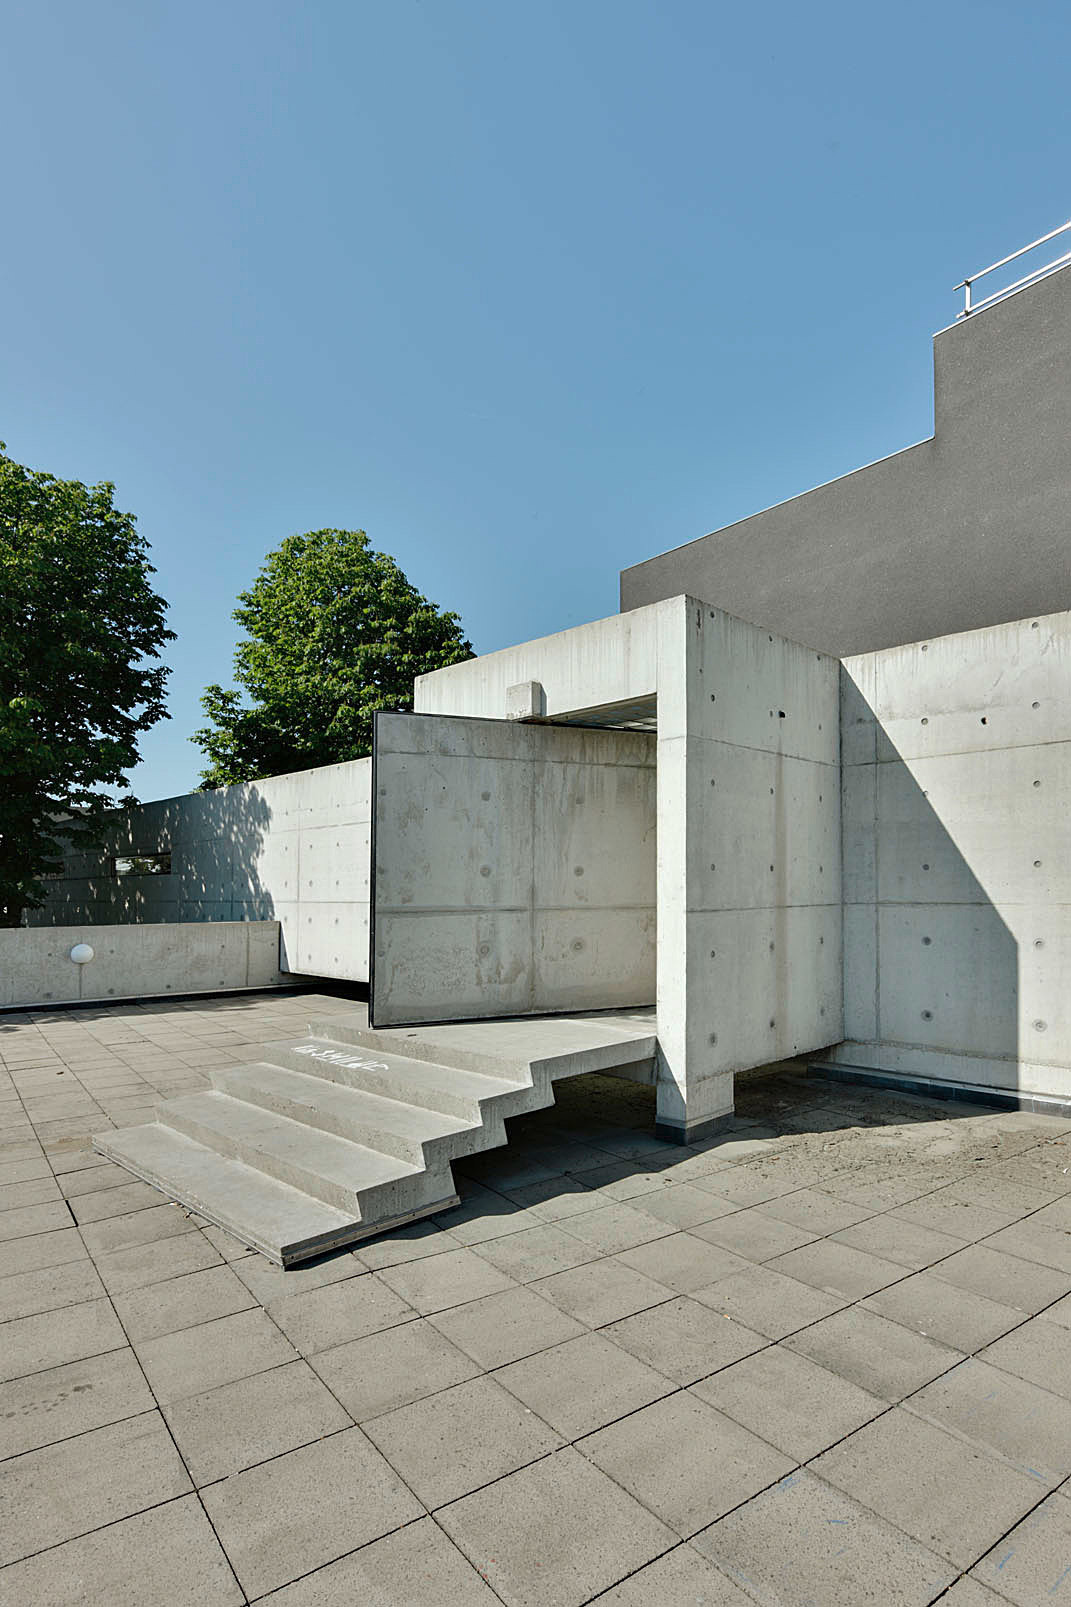 Academy of Art & Architecture in Maastricht, the Netherlands by Wiel Arets Architects